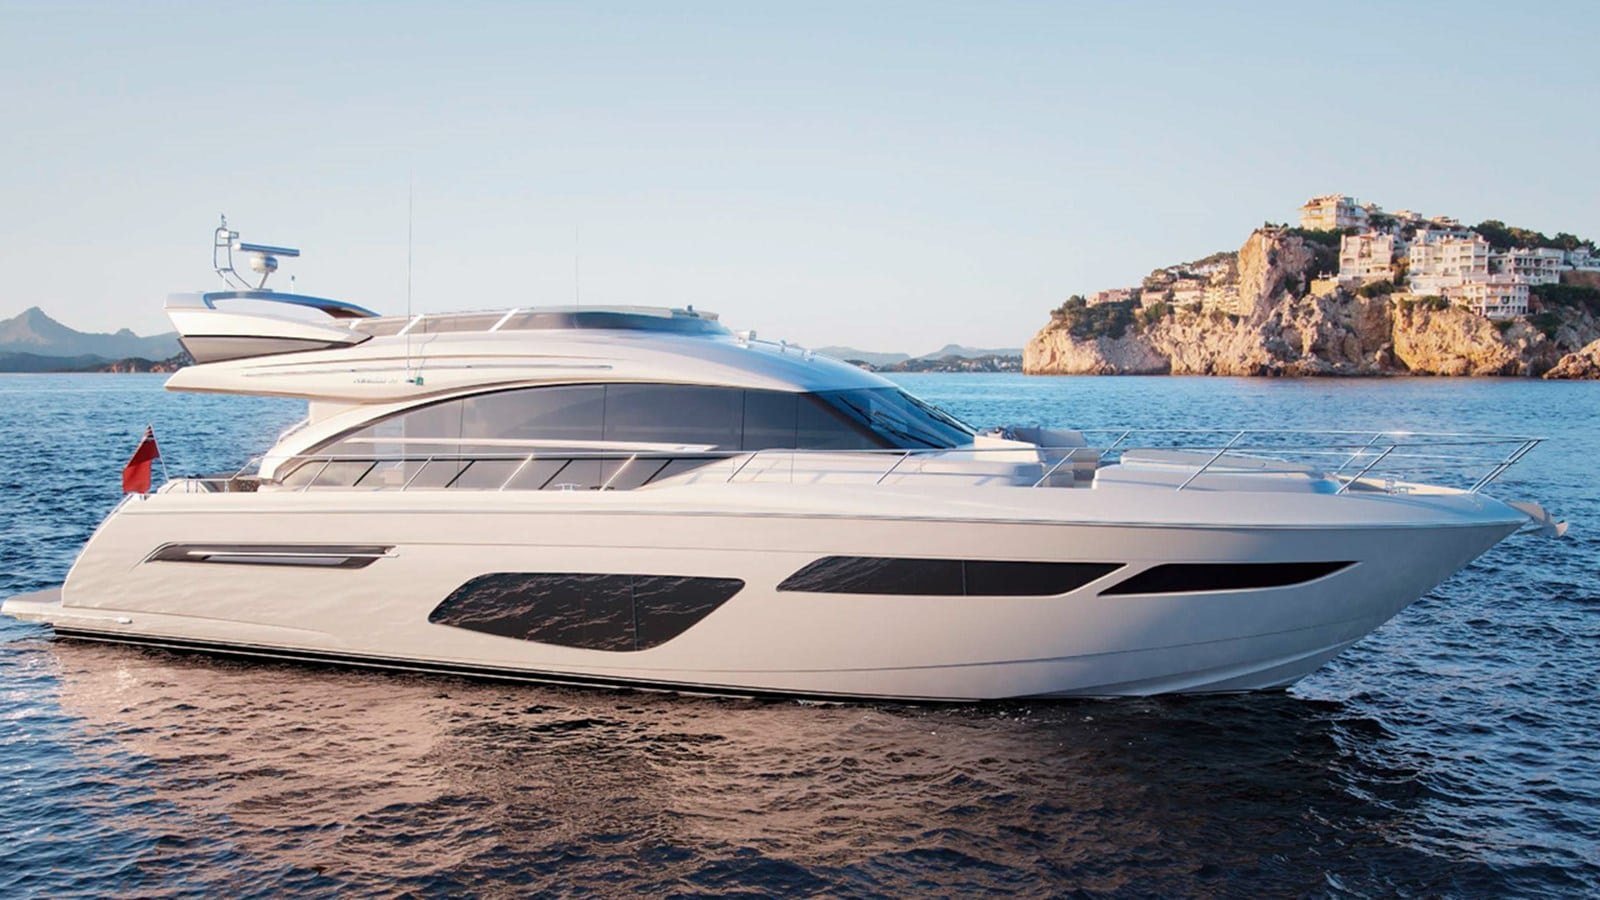 New Princess Yachts F70 Yacht